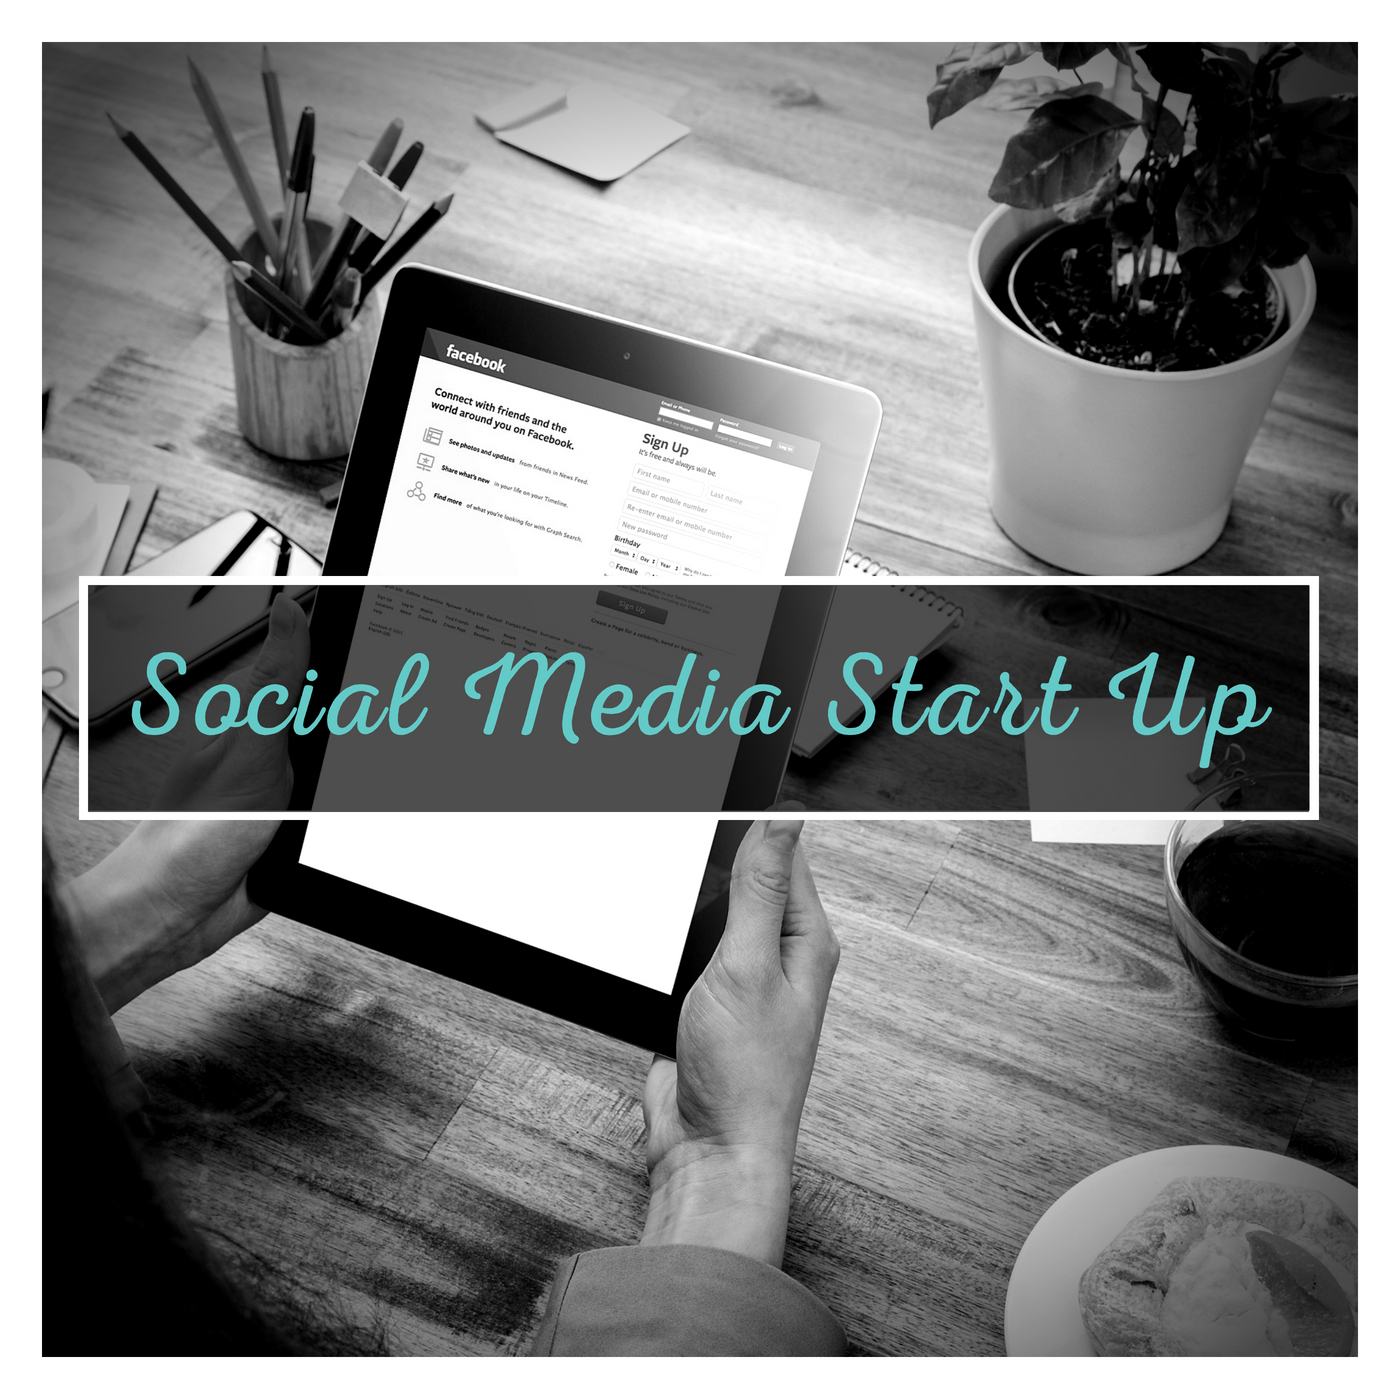 $500 - Your Facebook page can be a game-changer IF done right.I'll share with you all my social media knowledge so you can start posting strategically and with confidence.This package includes:· Audit of your page· Social media strategy & content schedule· 7 branded post templates in Canva· FB page set up· Branded FB cover page